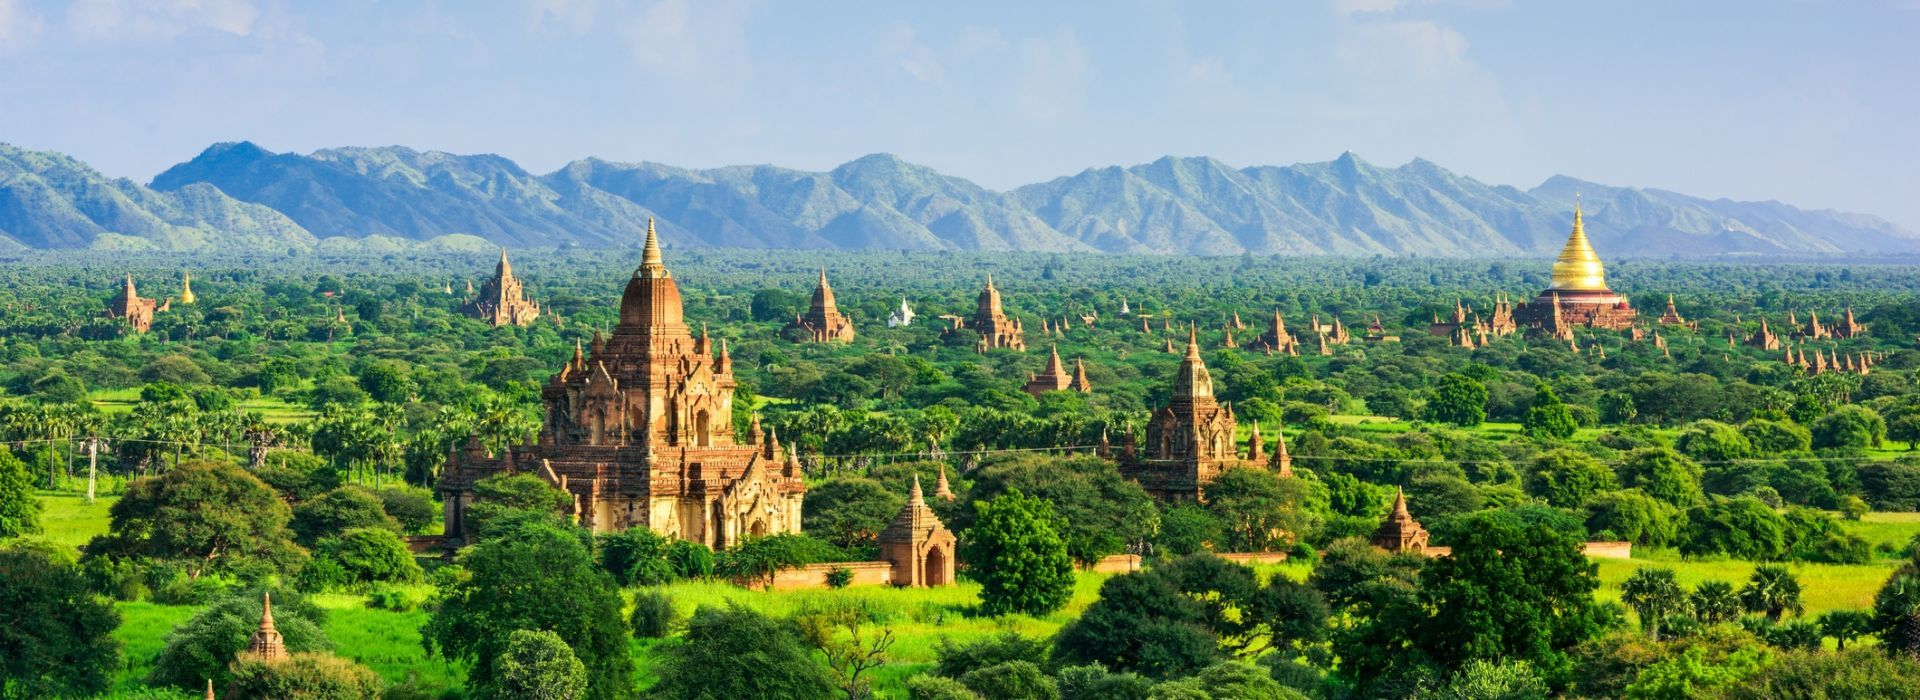 Cultural, religious and historic sites Tours in Myanmar